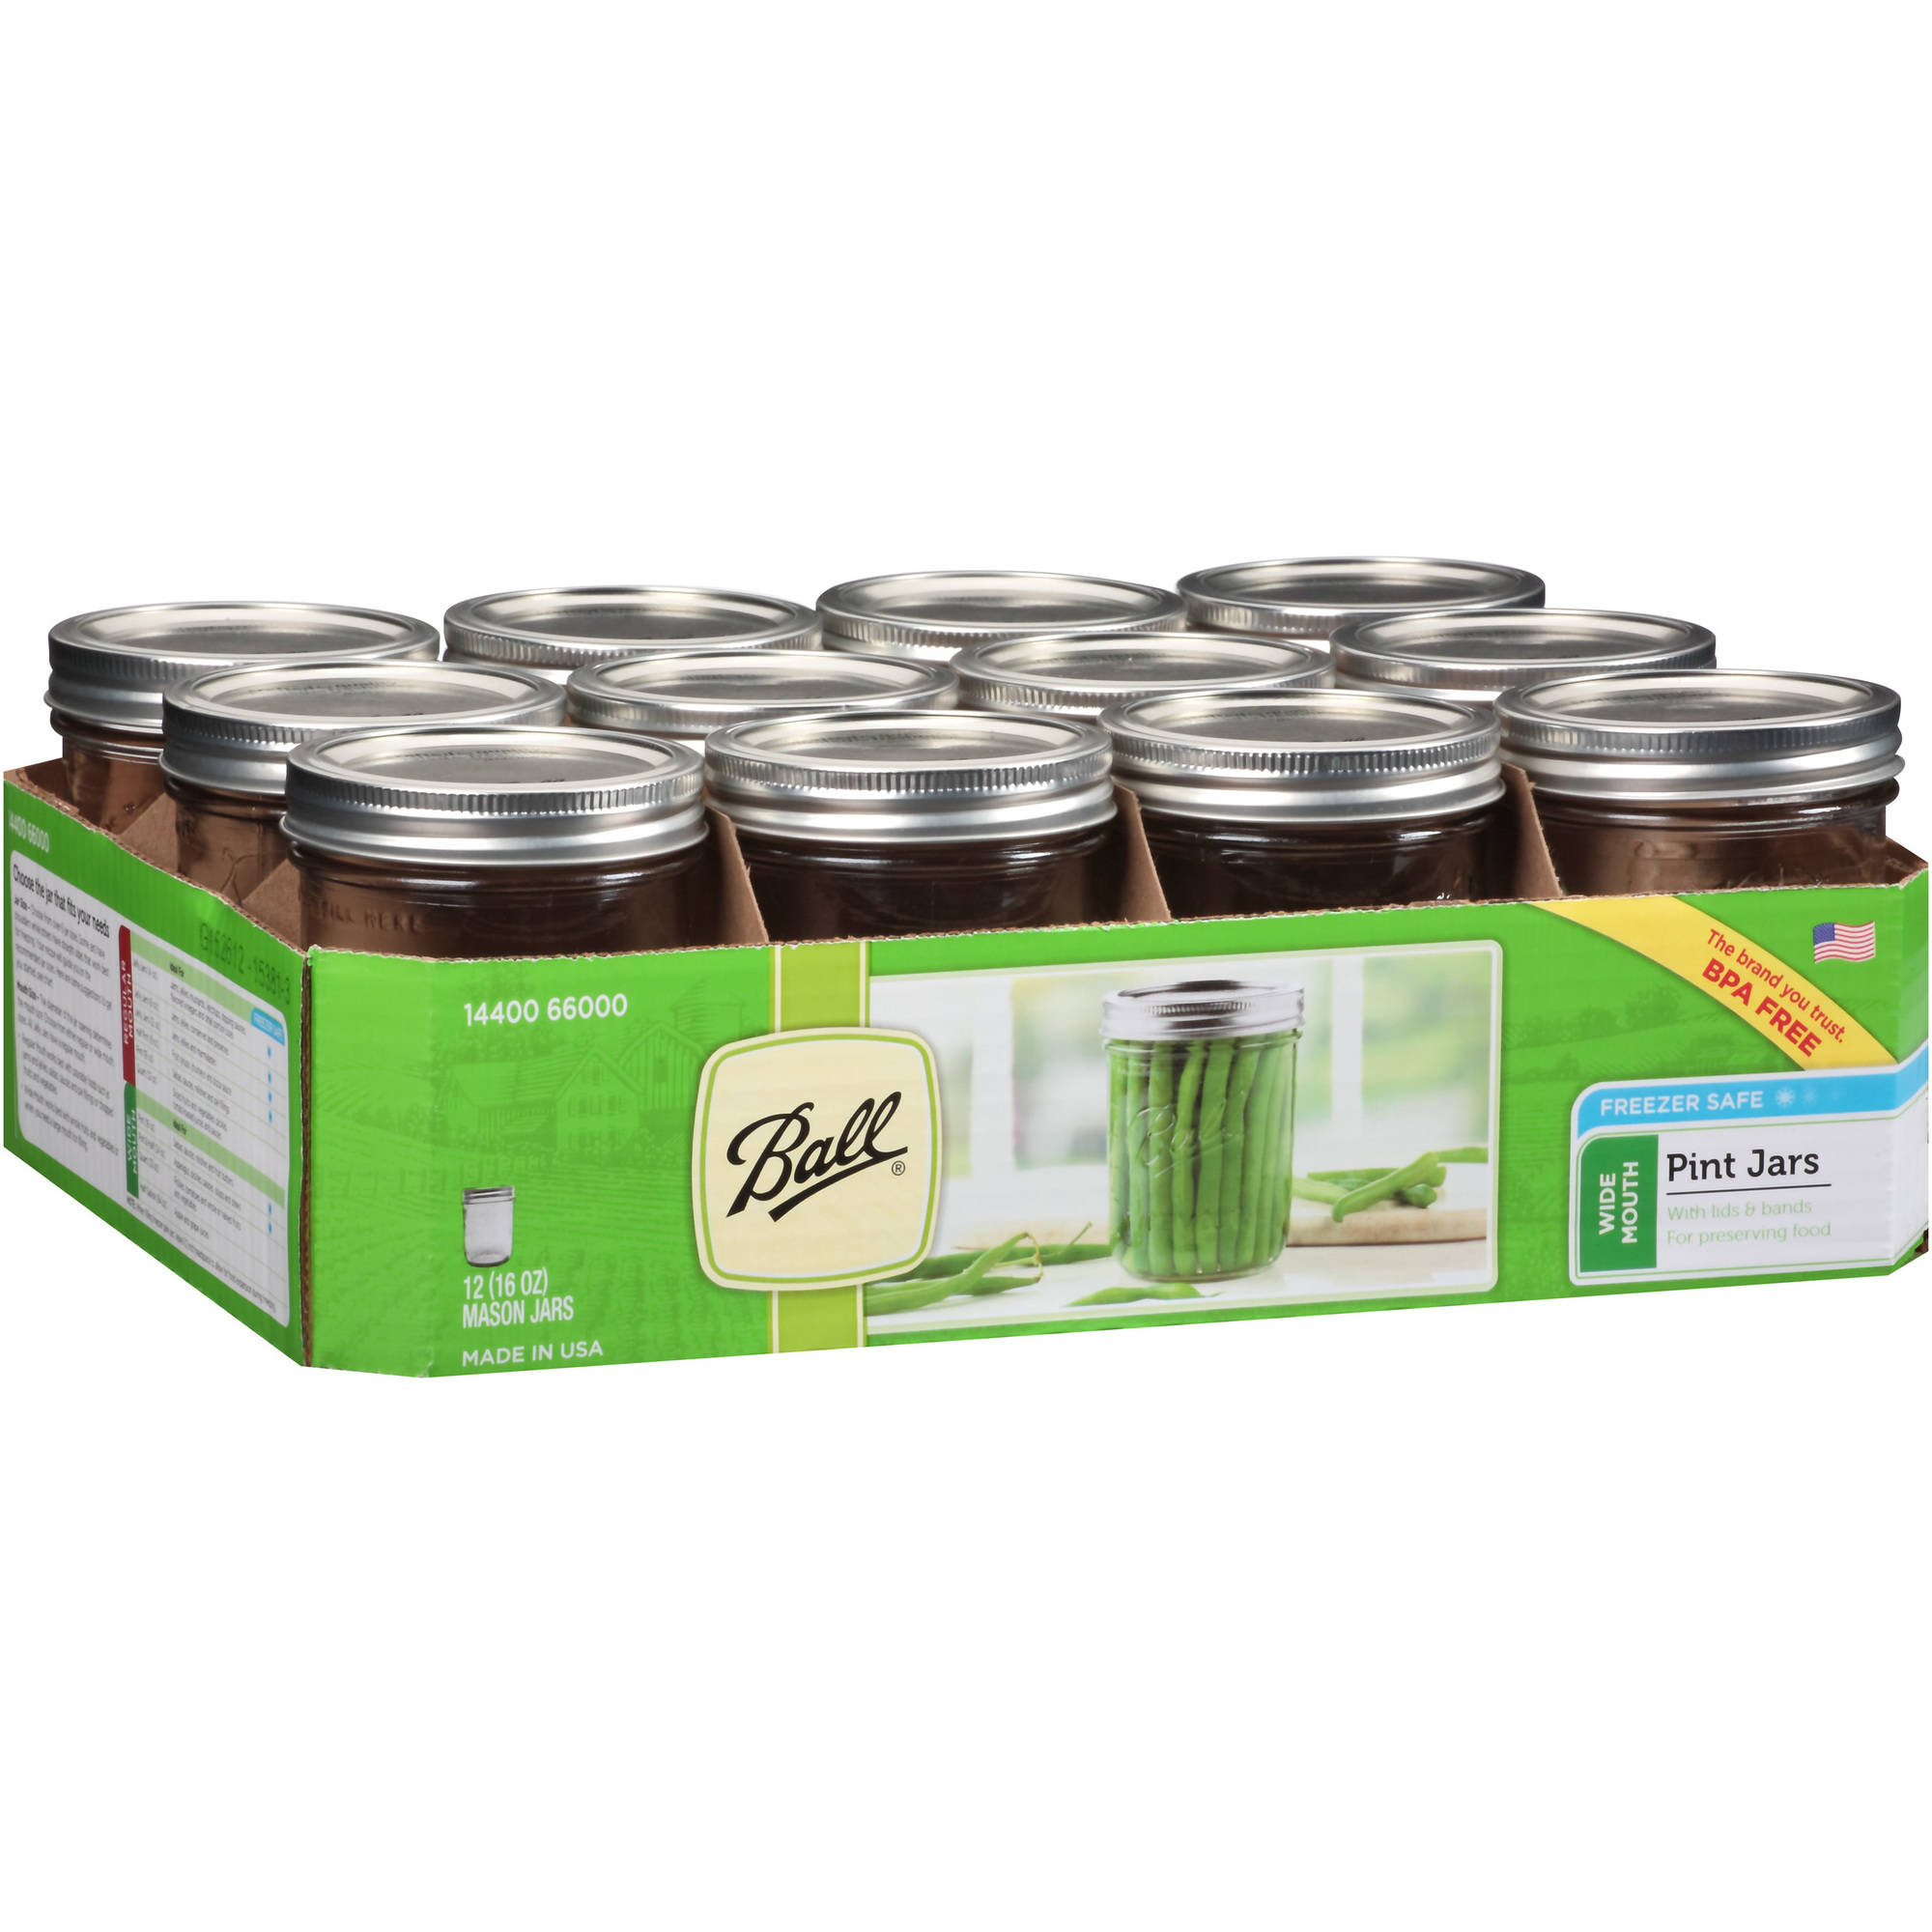 Ball Wide Mouth Pint Jars, 12 count